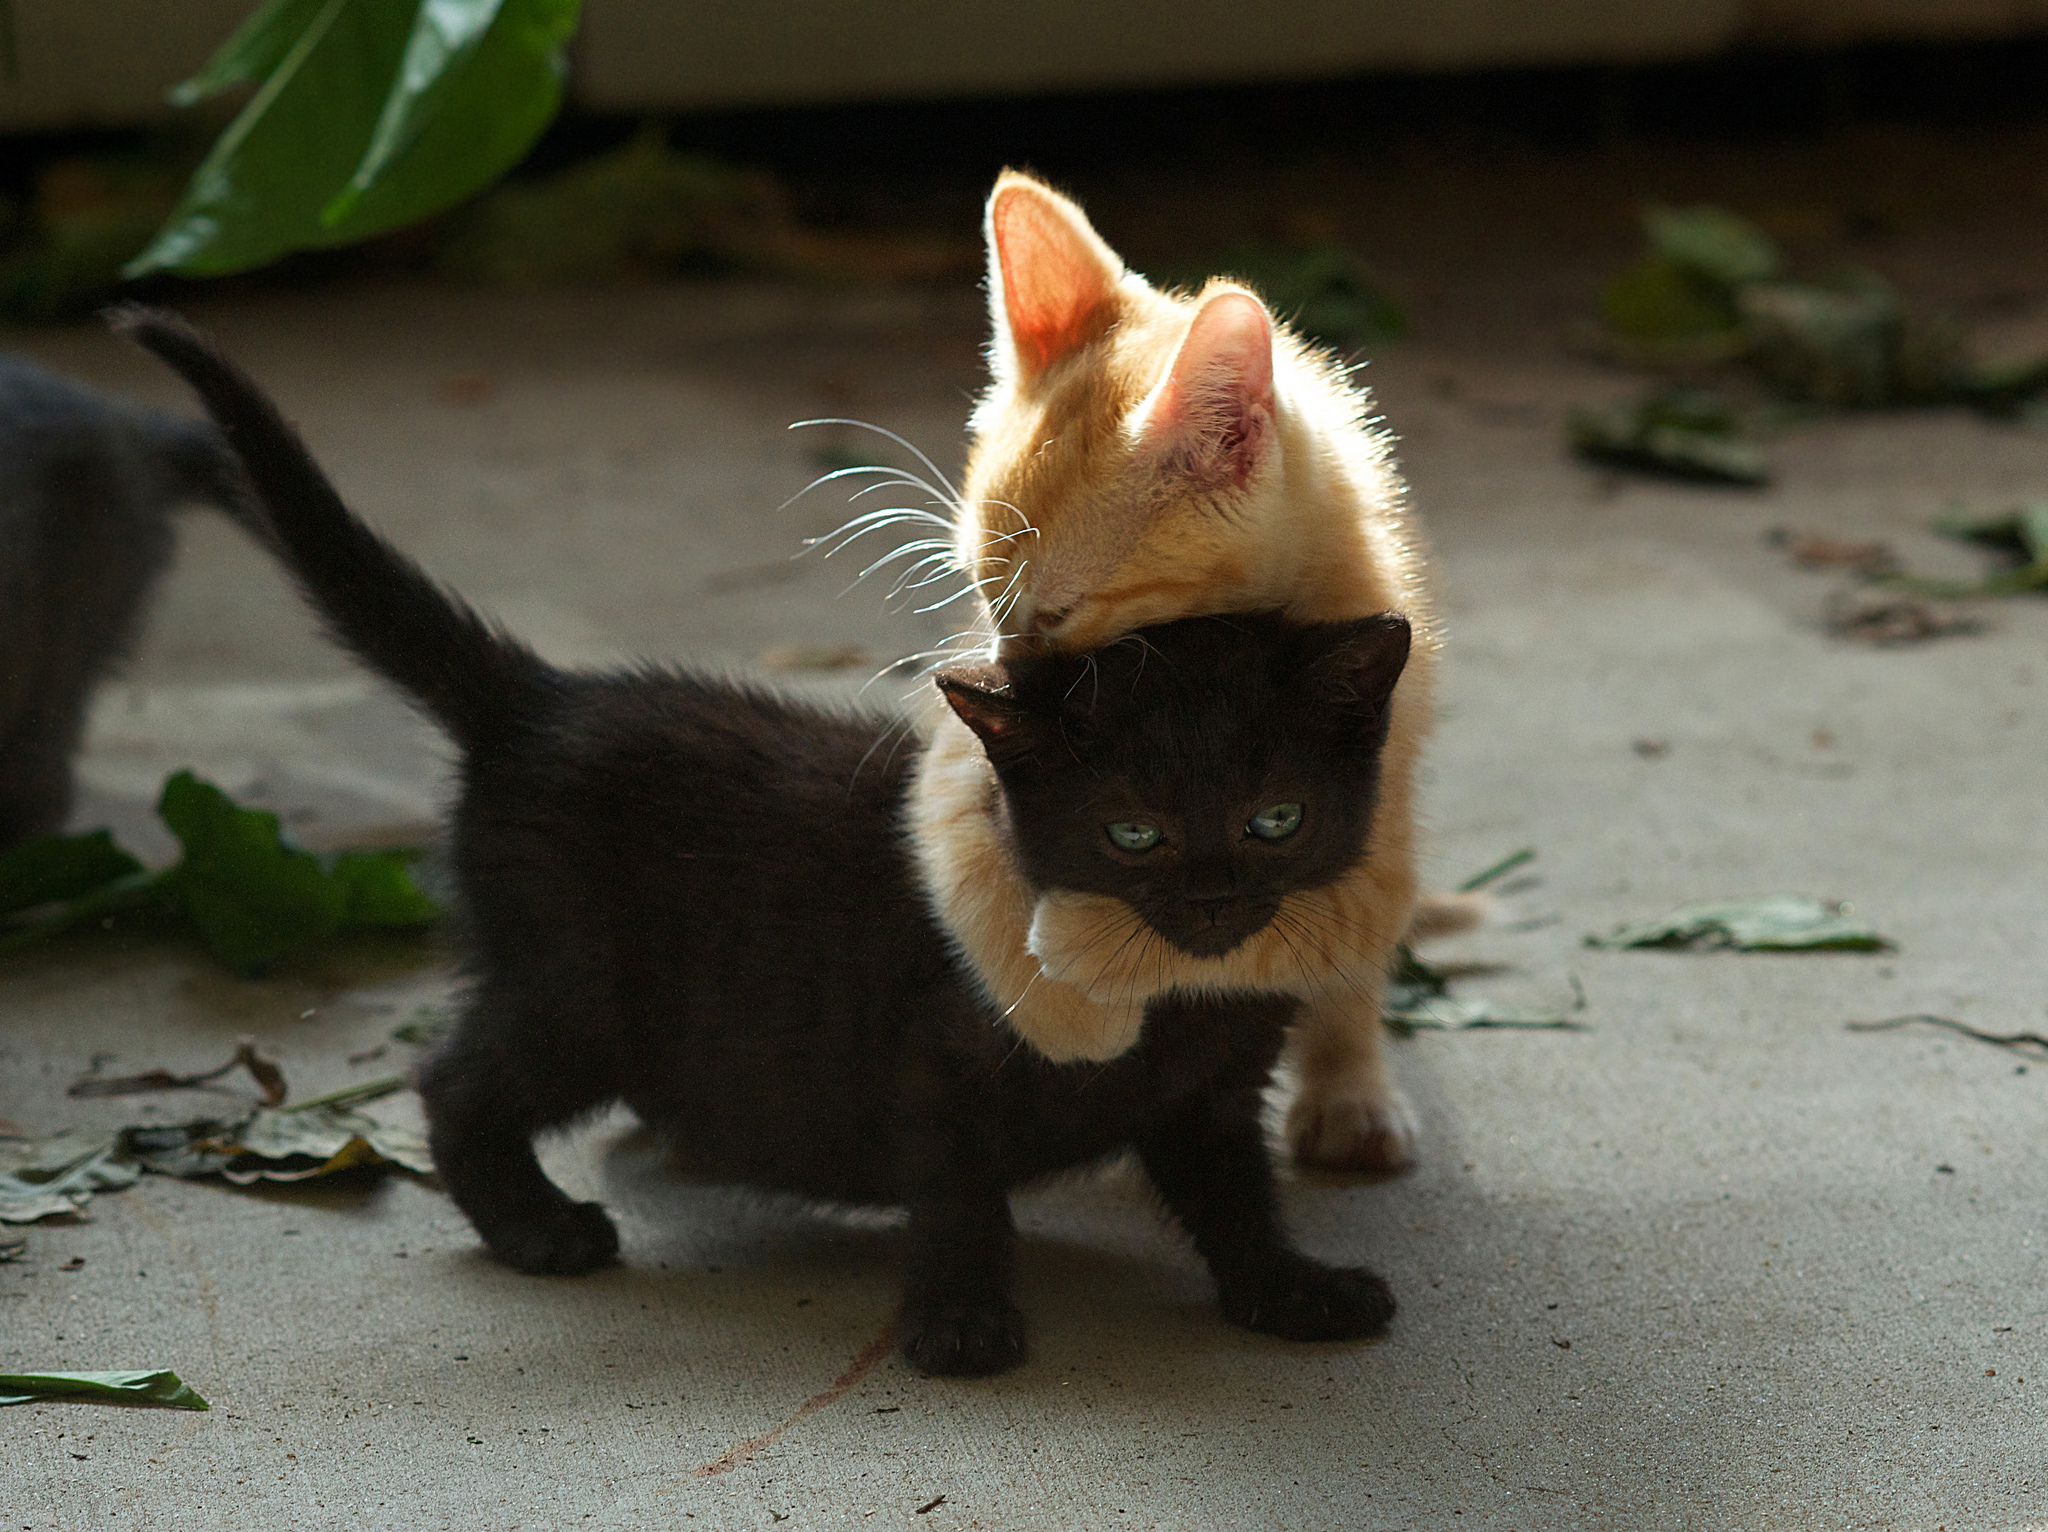 136167 download wallpaper Animals, Couple, Pair, Redhead, Playful, Kittens screensavers and pictures for free